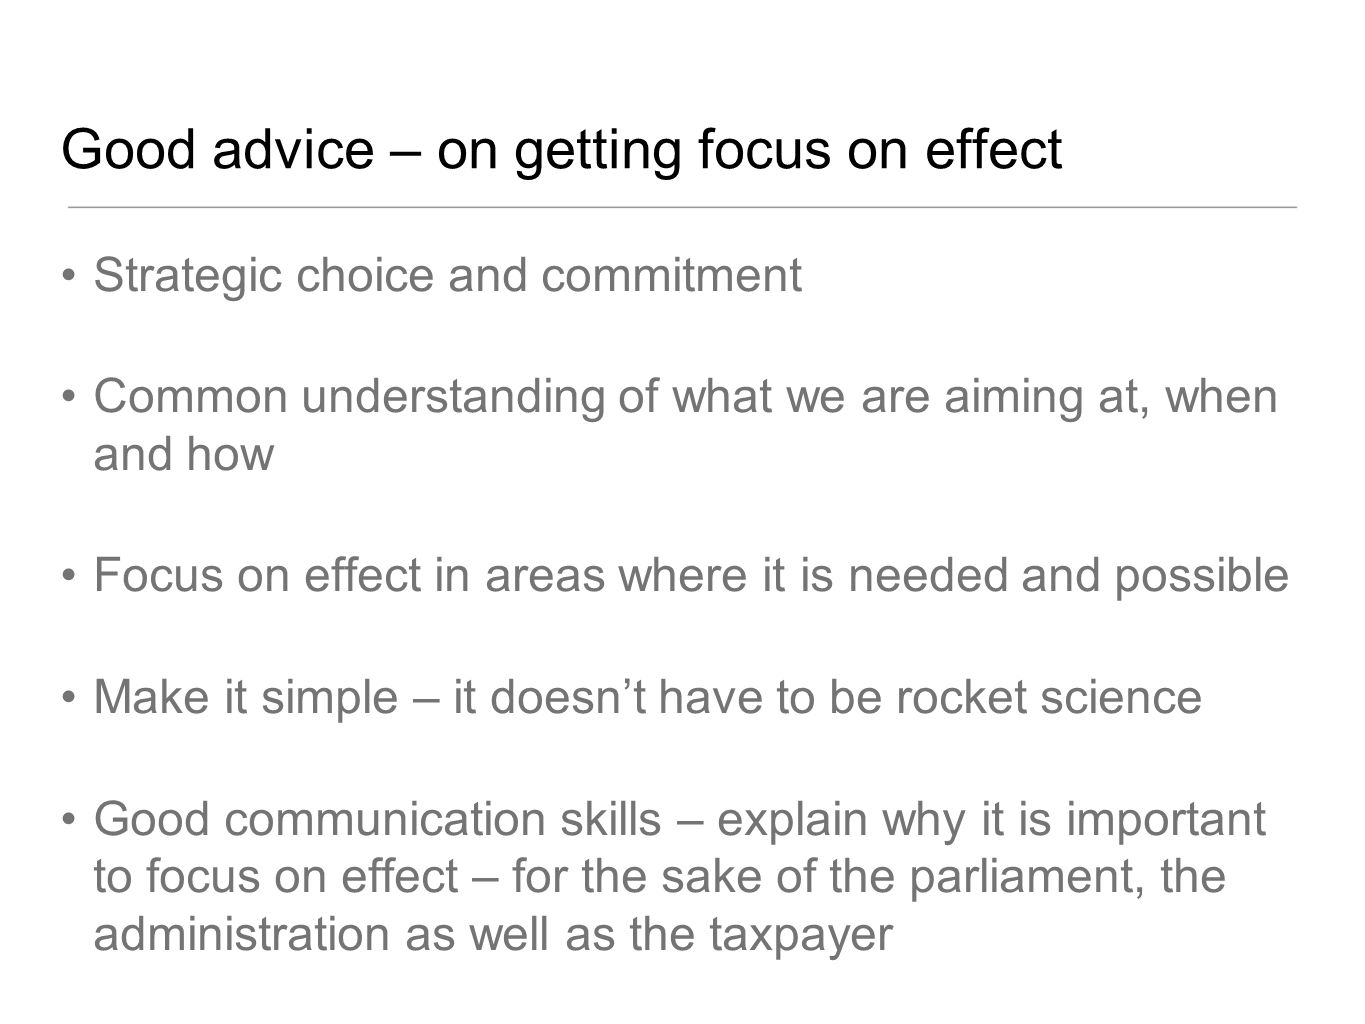 Good advice – on getting focus on effect Strategic choice and commitment Common understanding of what we are aiming at, when and how Focus on effect in areas where it is needed and possible Make it simple – it doesnt have to be rocket science Good communication skills – explain why it is important to focus on effect – for the sake of the parliament, the administration as well as the taxpayer